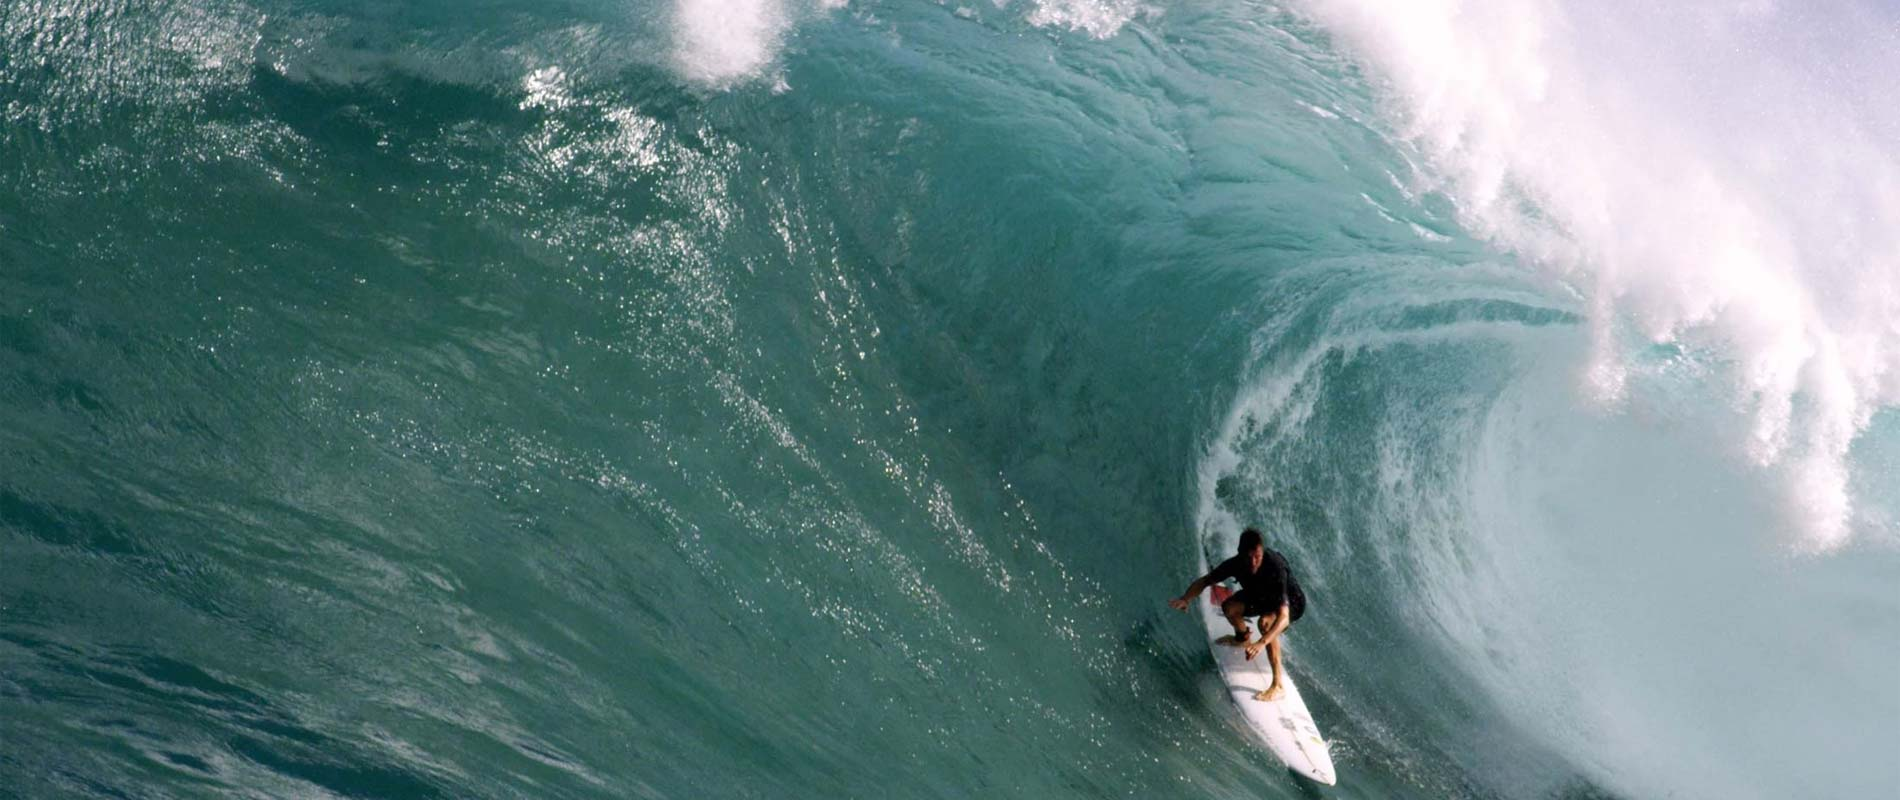 Grant Twiggy Baker - Big Wave Surfer